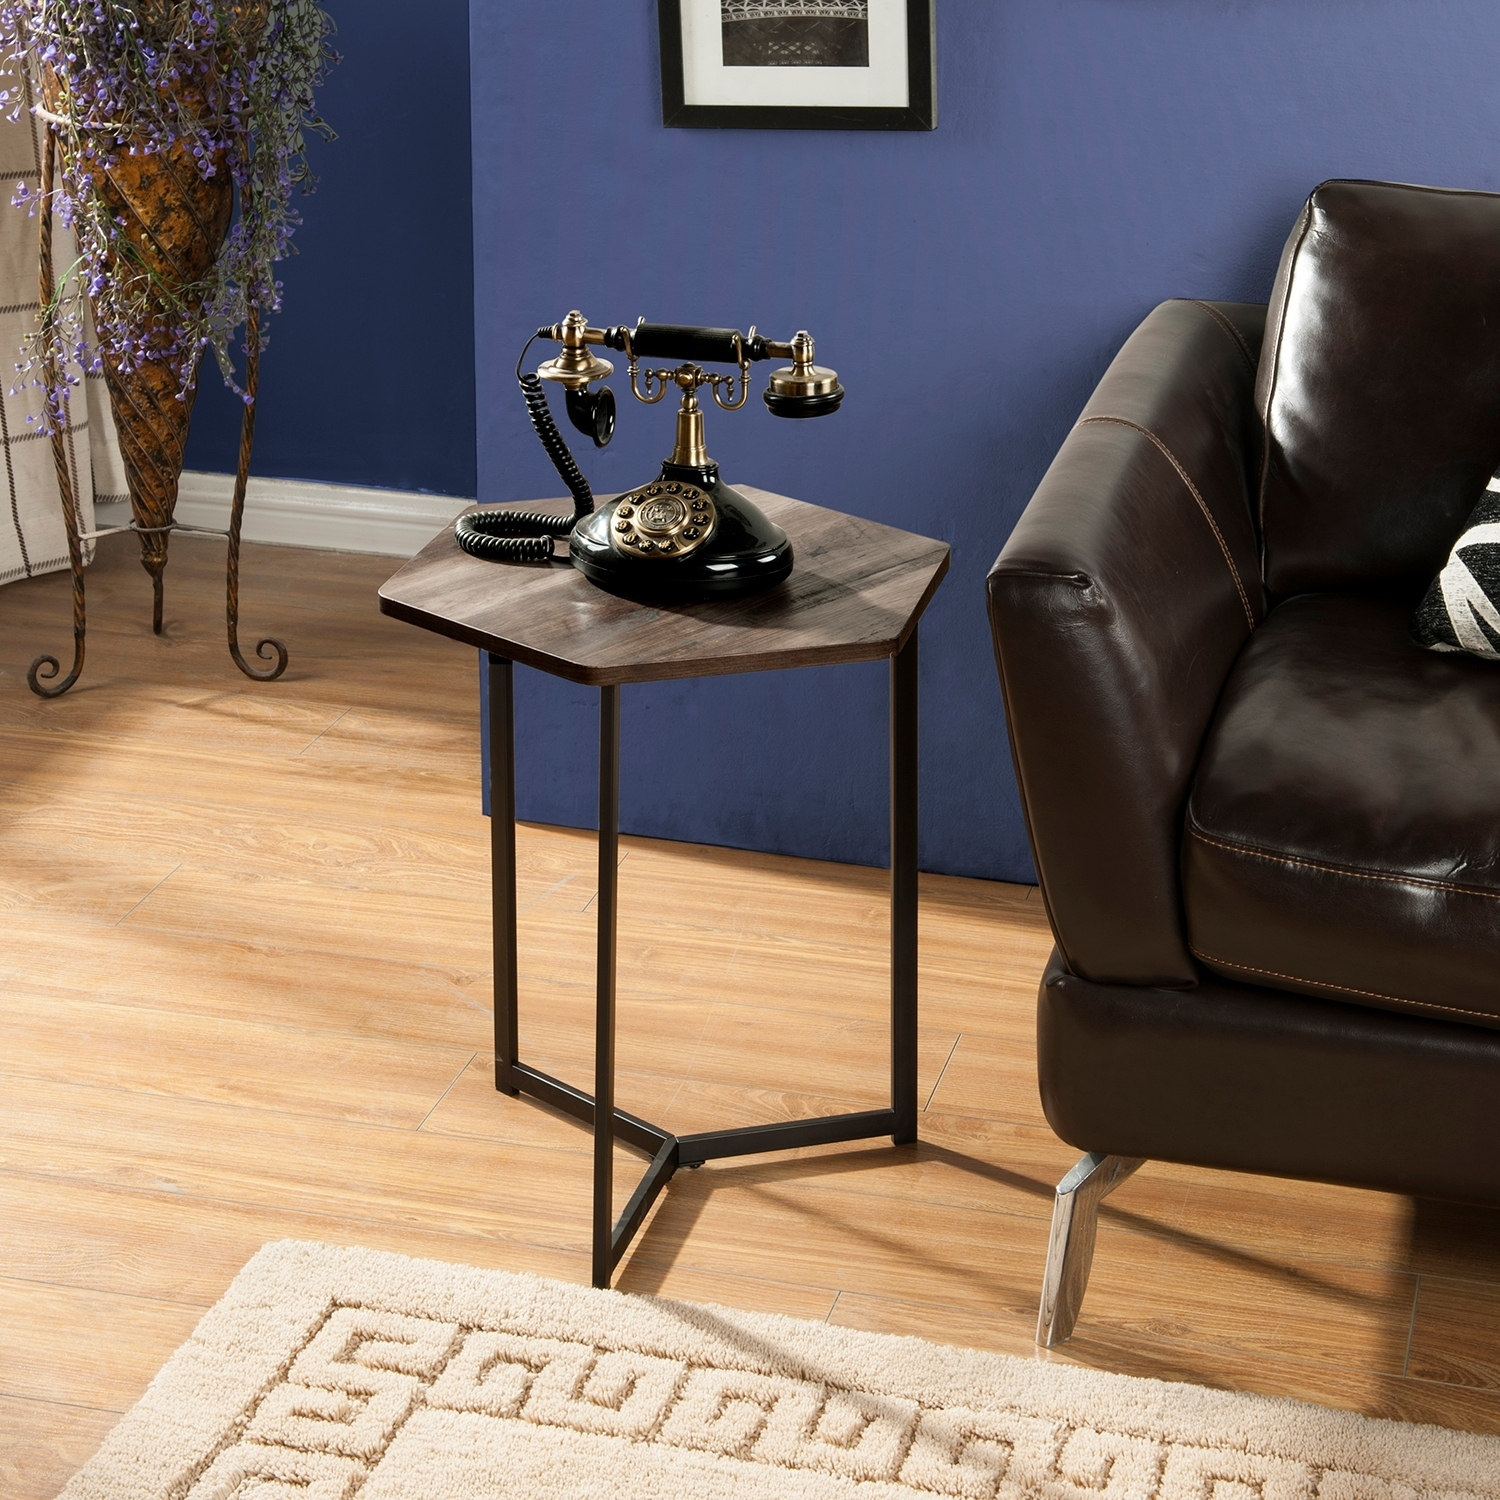 Homestar Hexagon Side Table in Black Oak Finish